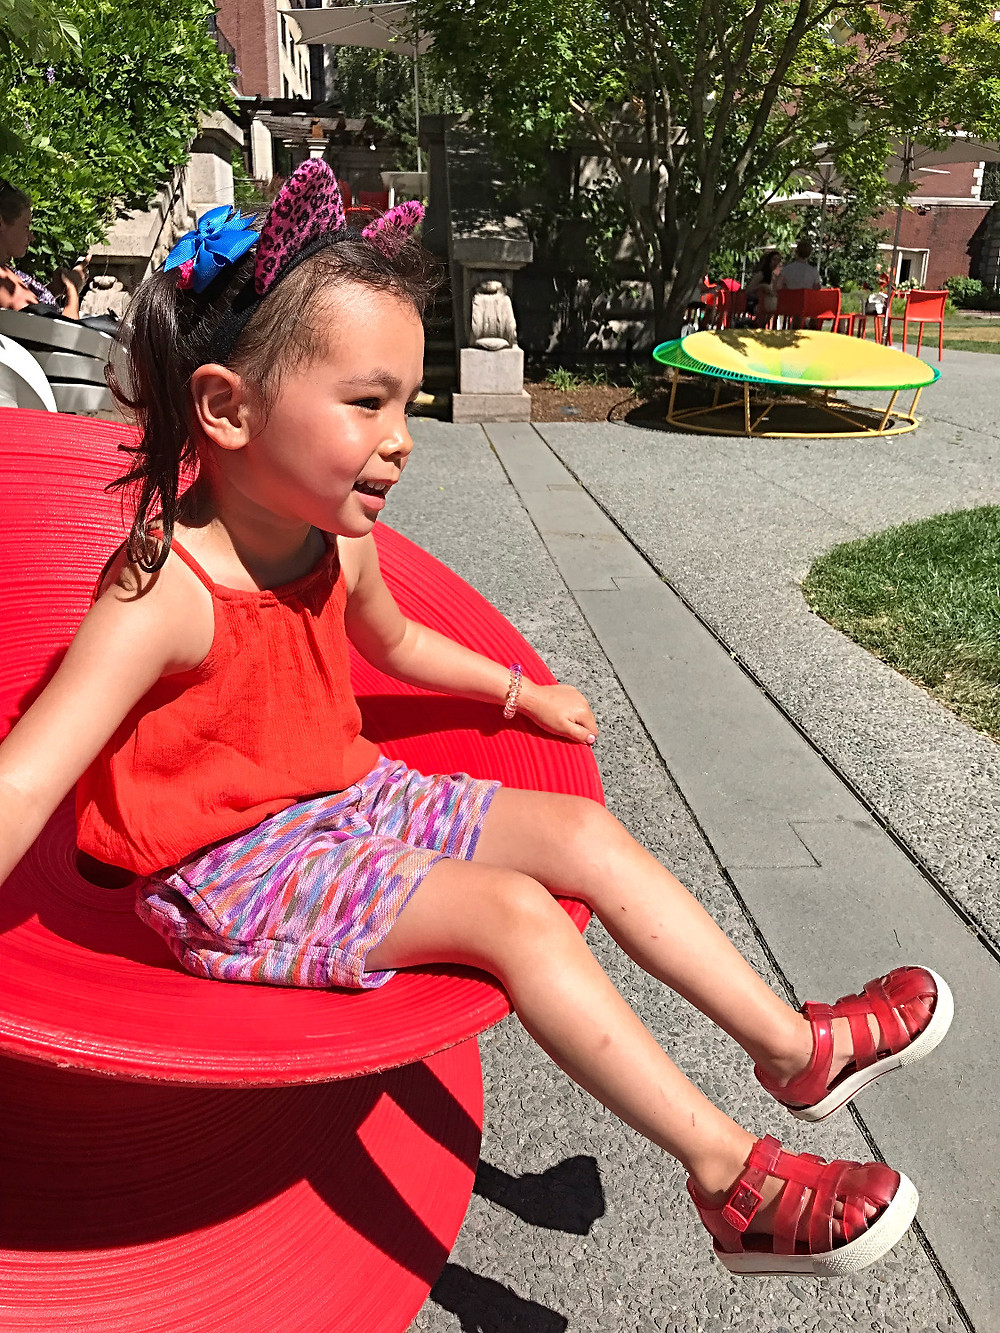 Cooper Hewitt, museums with kids, cultured kids, nyc kids, things to do this summer, things to do with kids this summer in nyc, Manhattan Color Walk, Color Factory, Herman Miller Magis Spun Chair